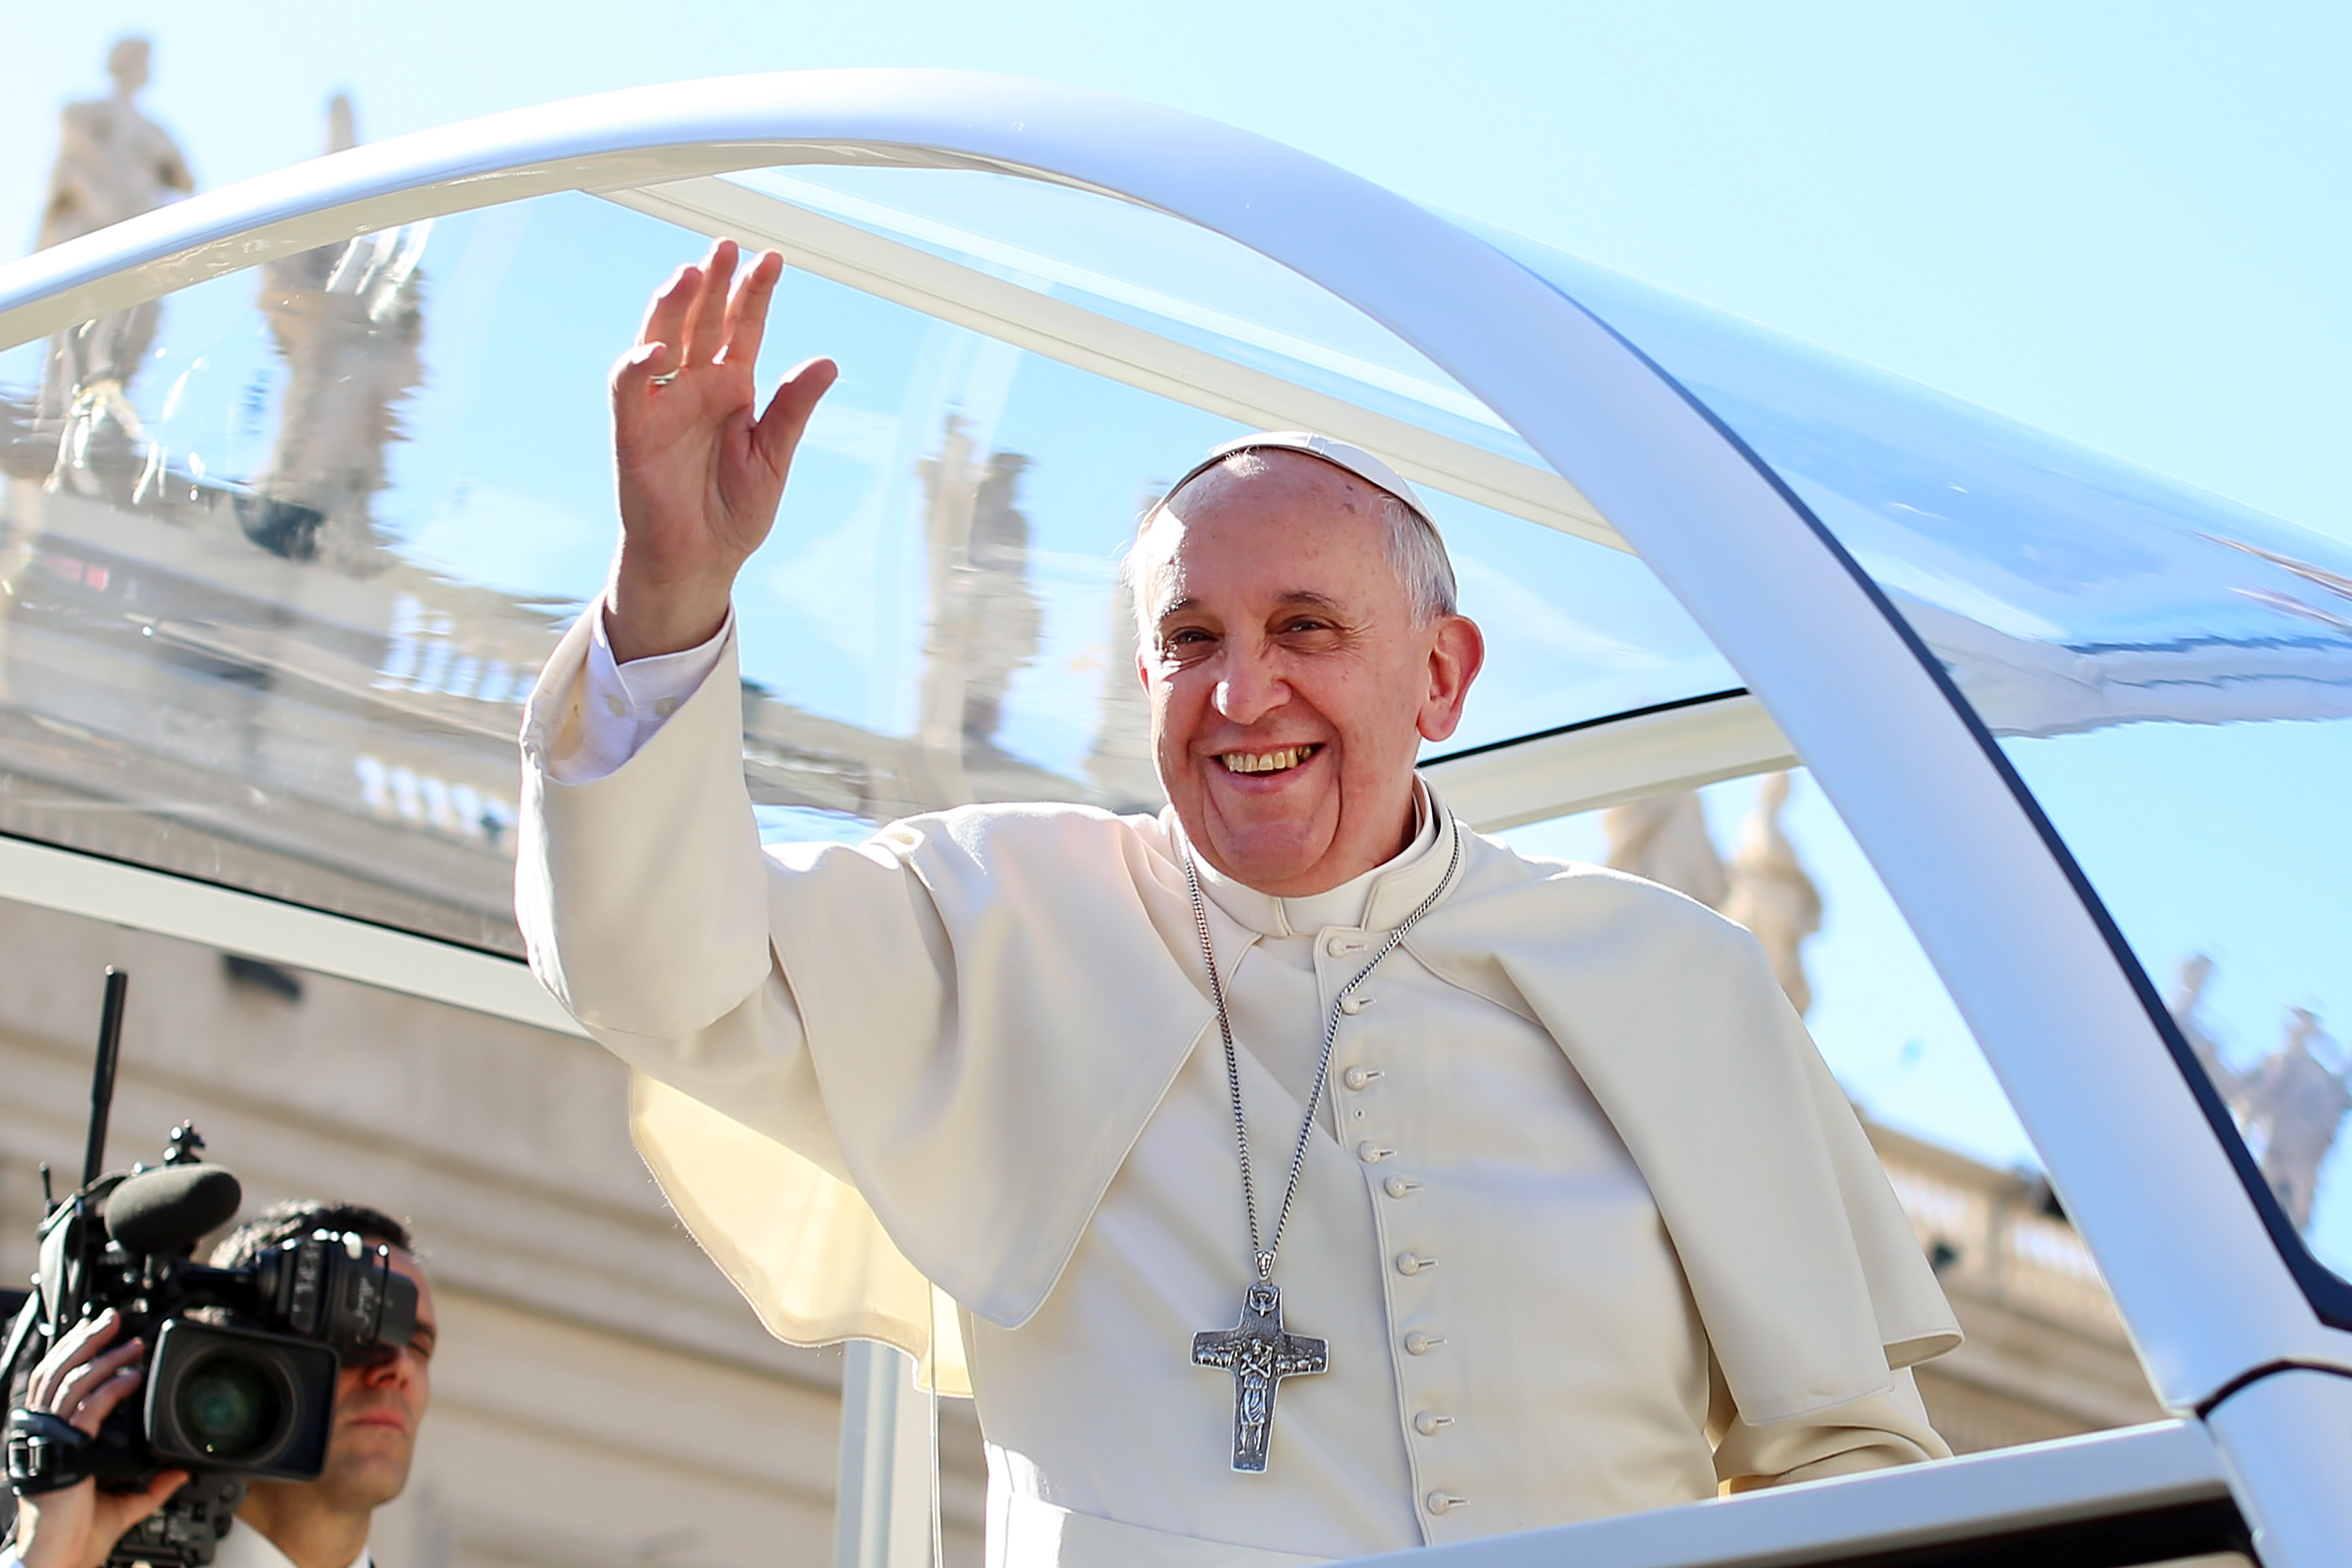 Pope Francis to Release Pop-Rock Album 'Wake Up!'